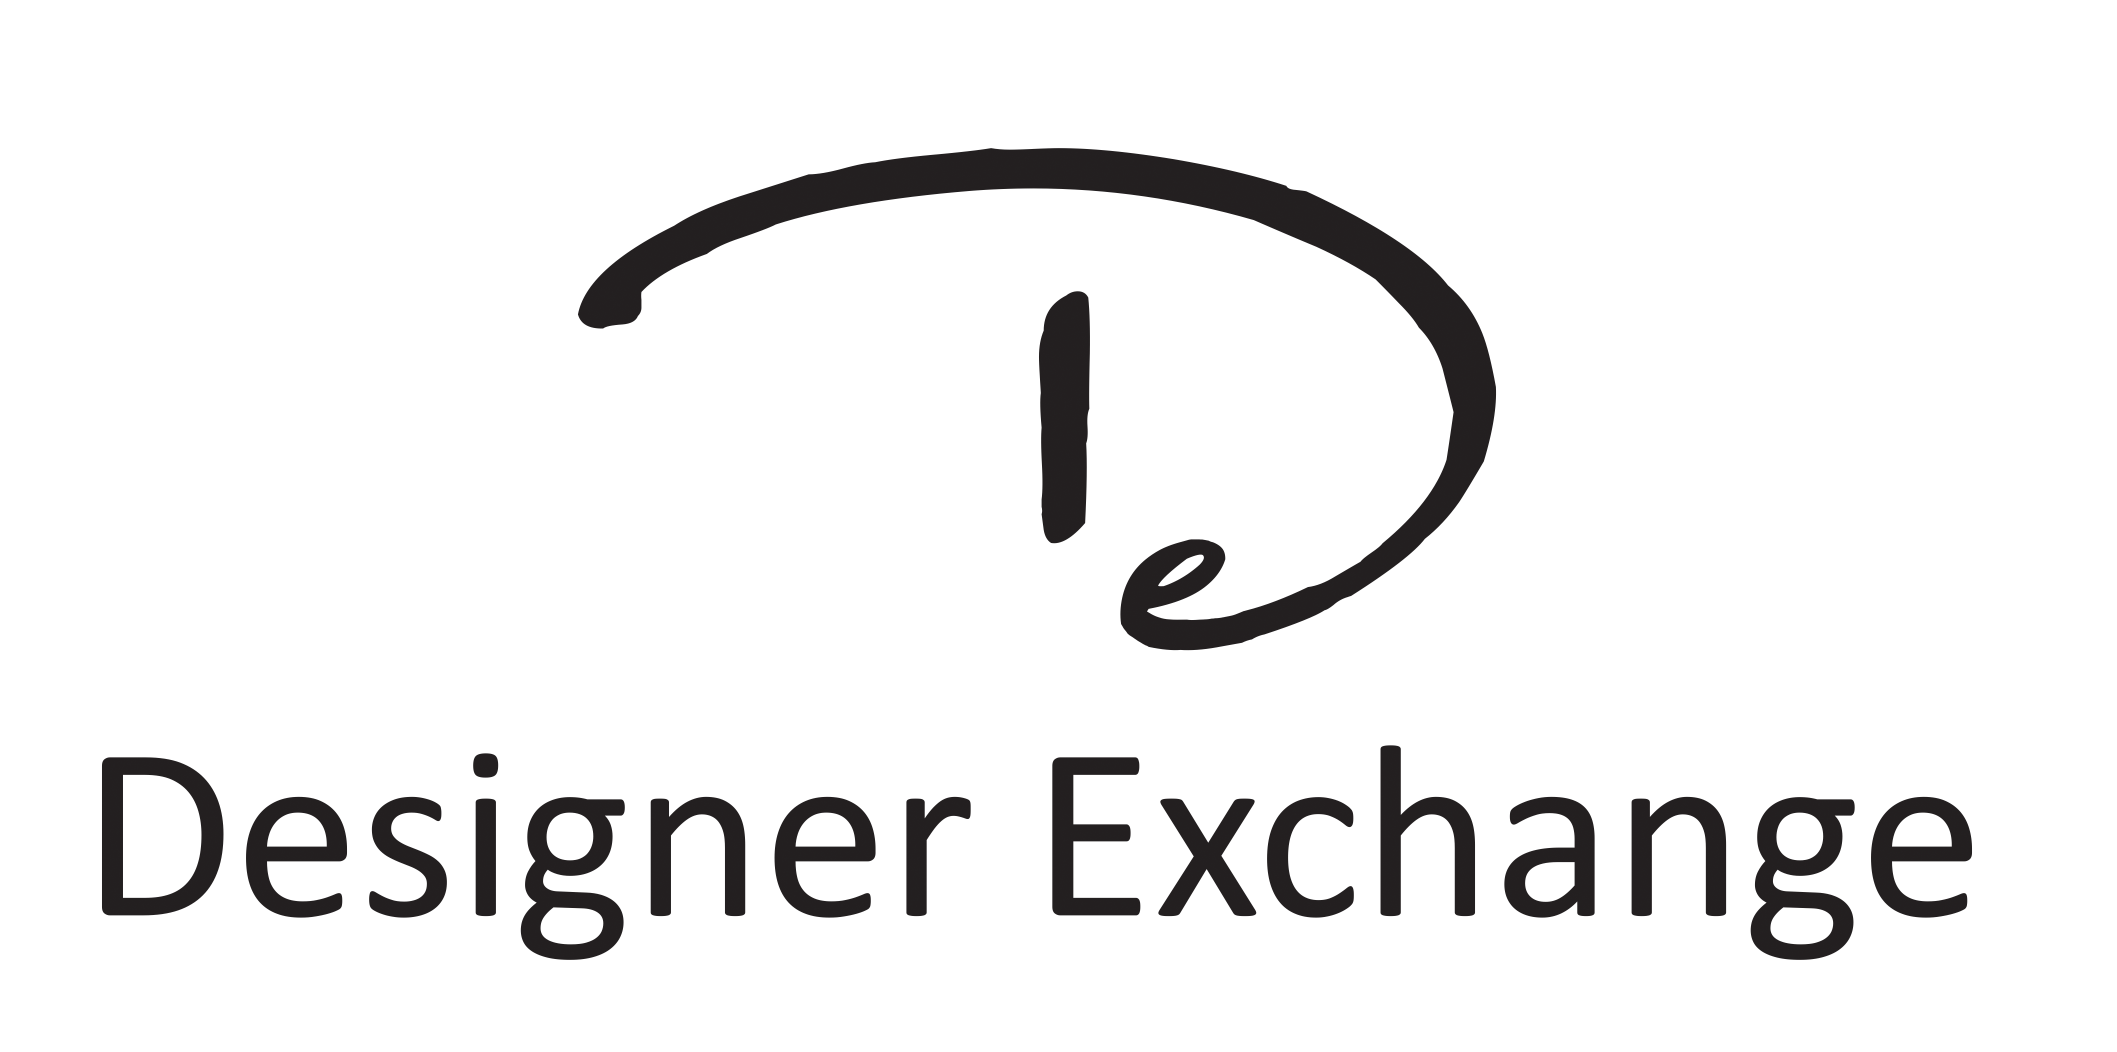 Designer Exchange